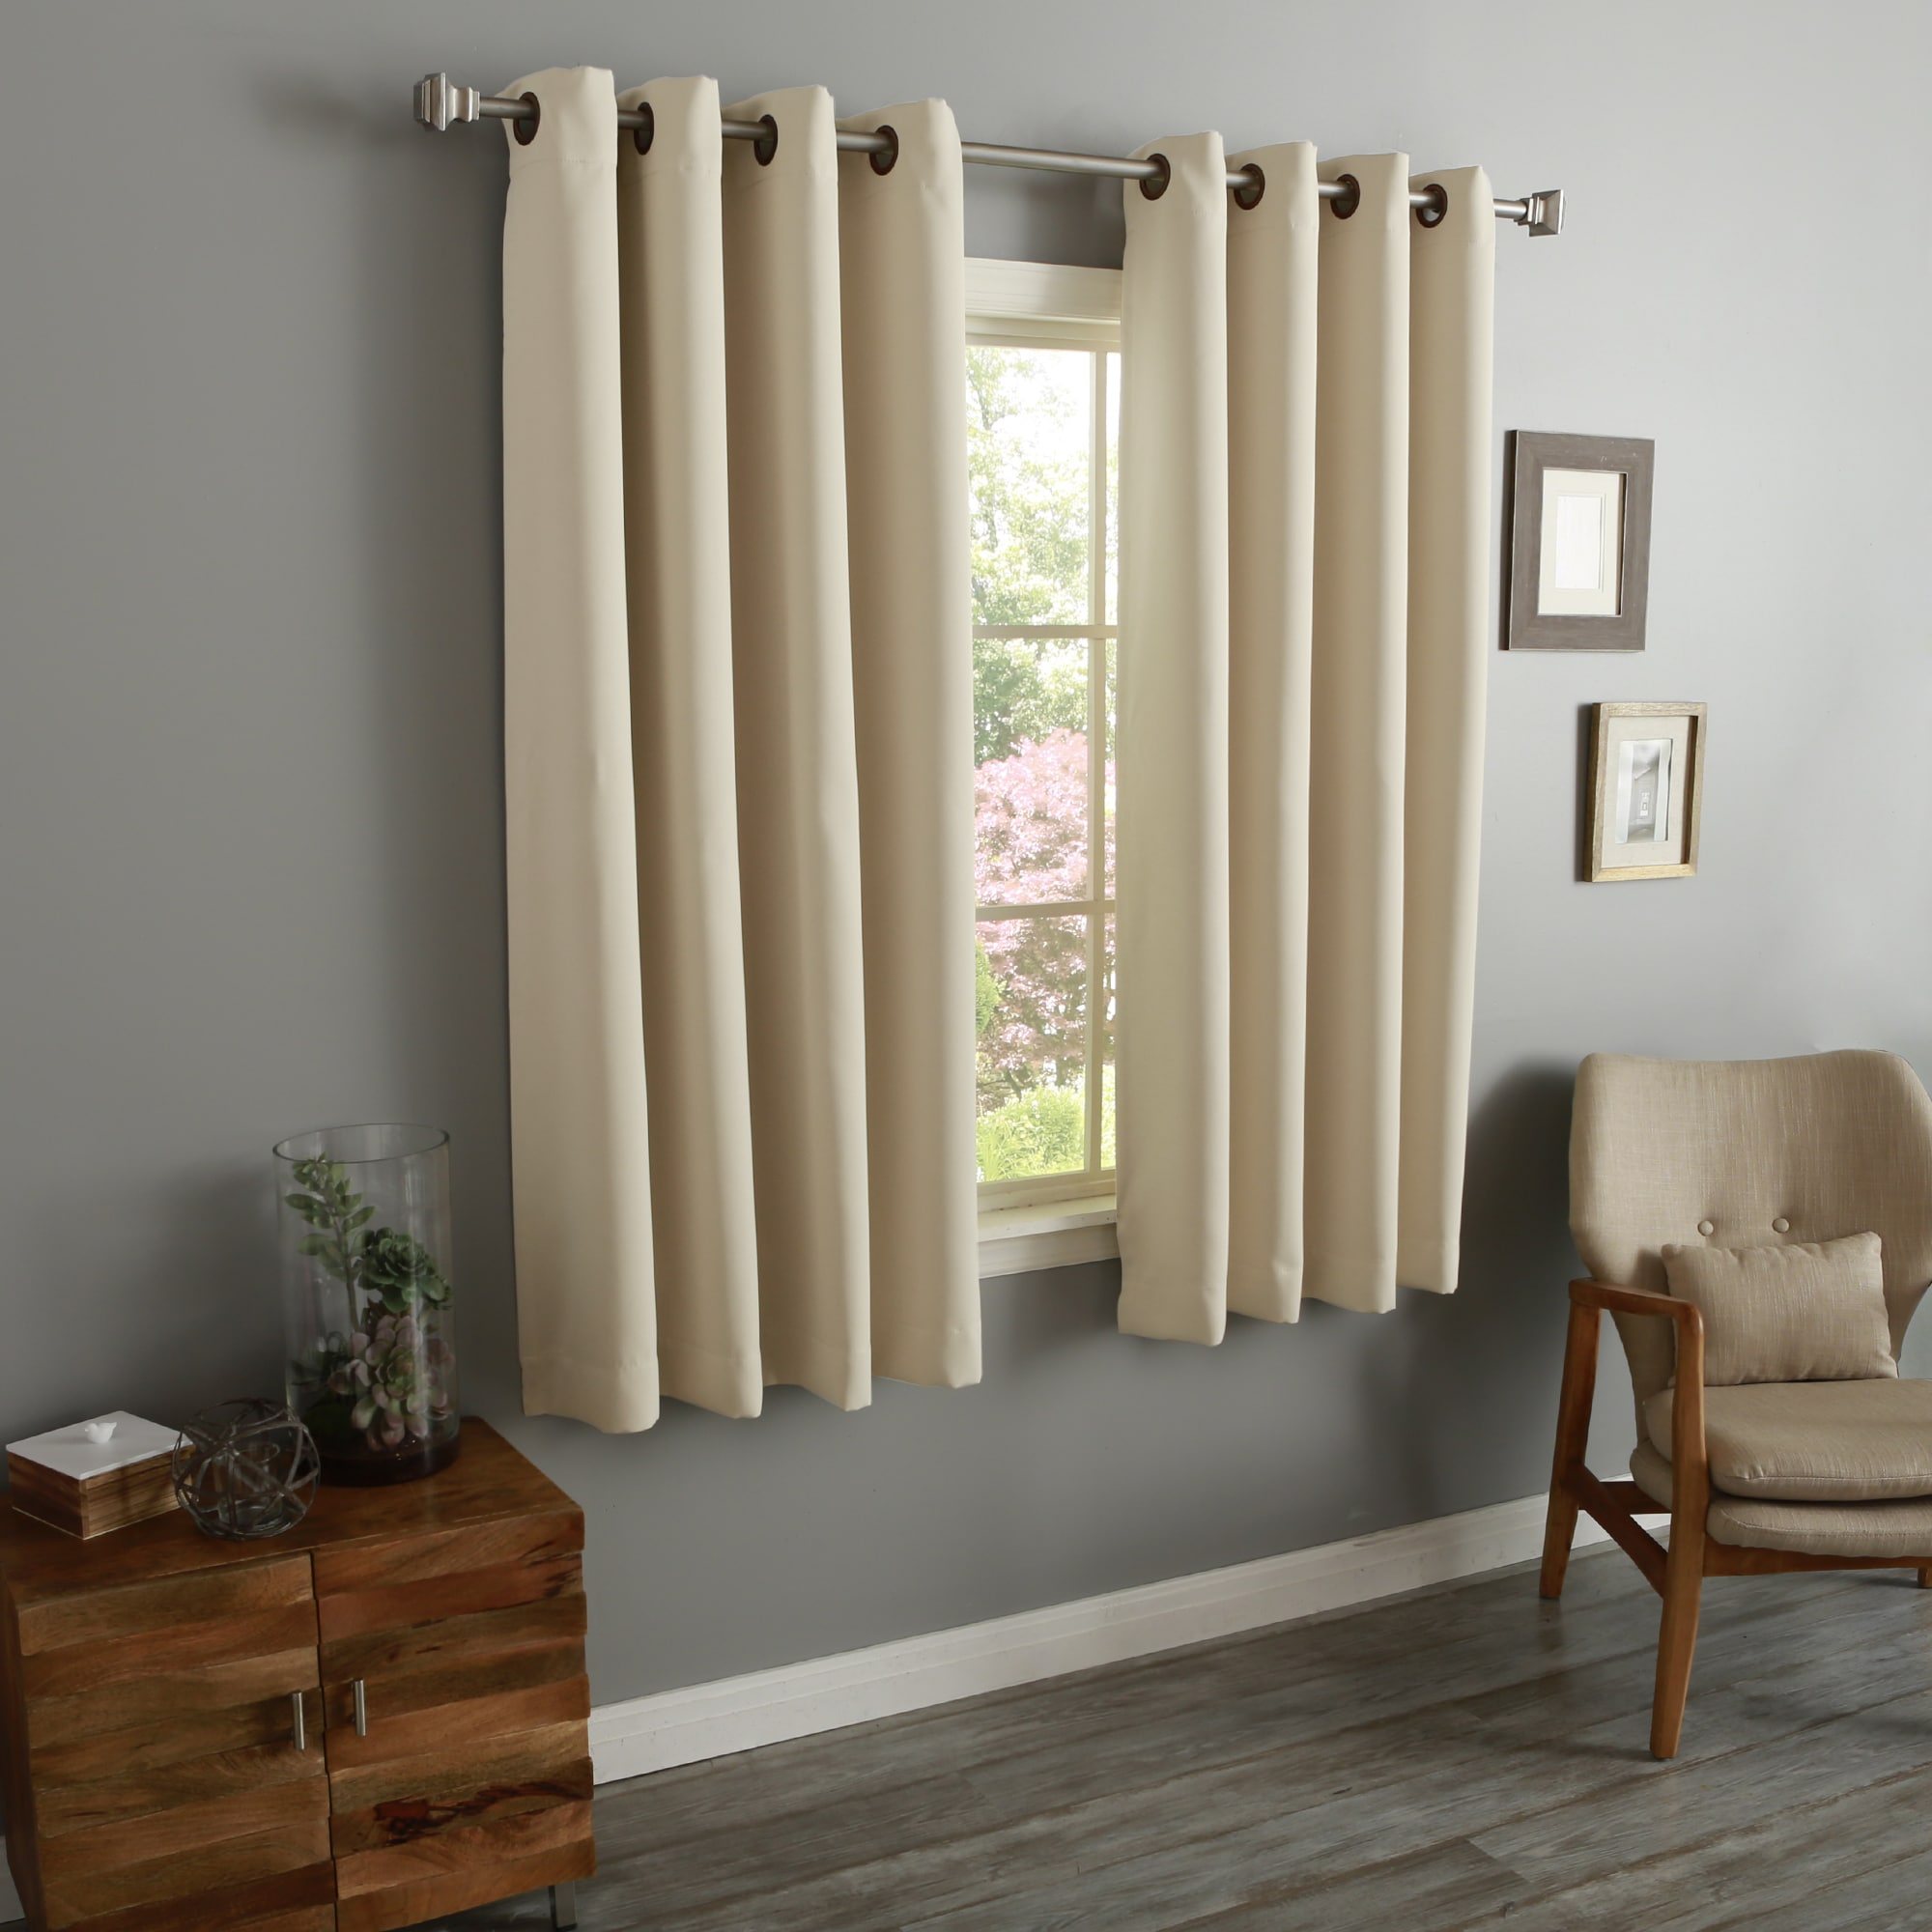 """Aurora Home Thermal Insulated Blackout 54 Inch Grommet Top Curtain Panel Pair – 52""""w X 54""""l Each Regarding Thermal Insulated Blackout Curtain Panel Pairs (View 12 of 30)"""